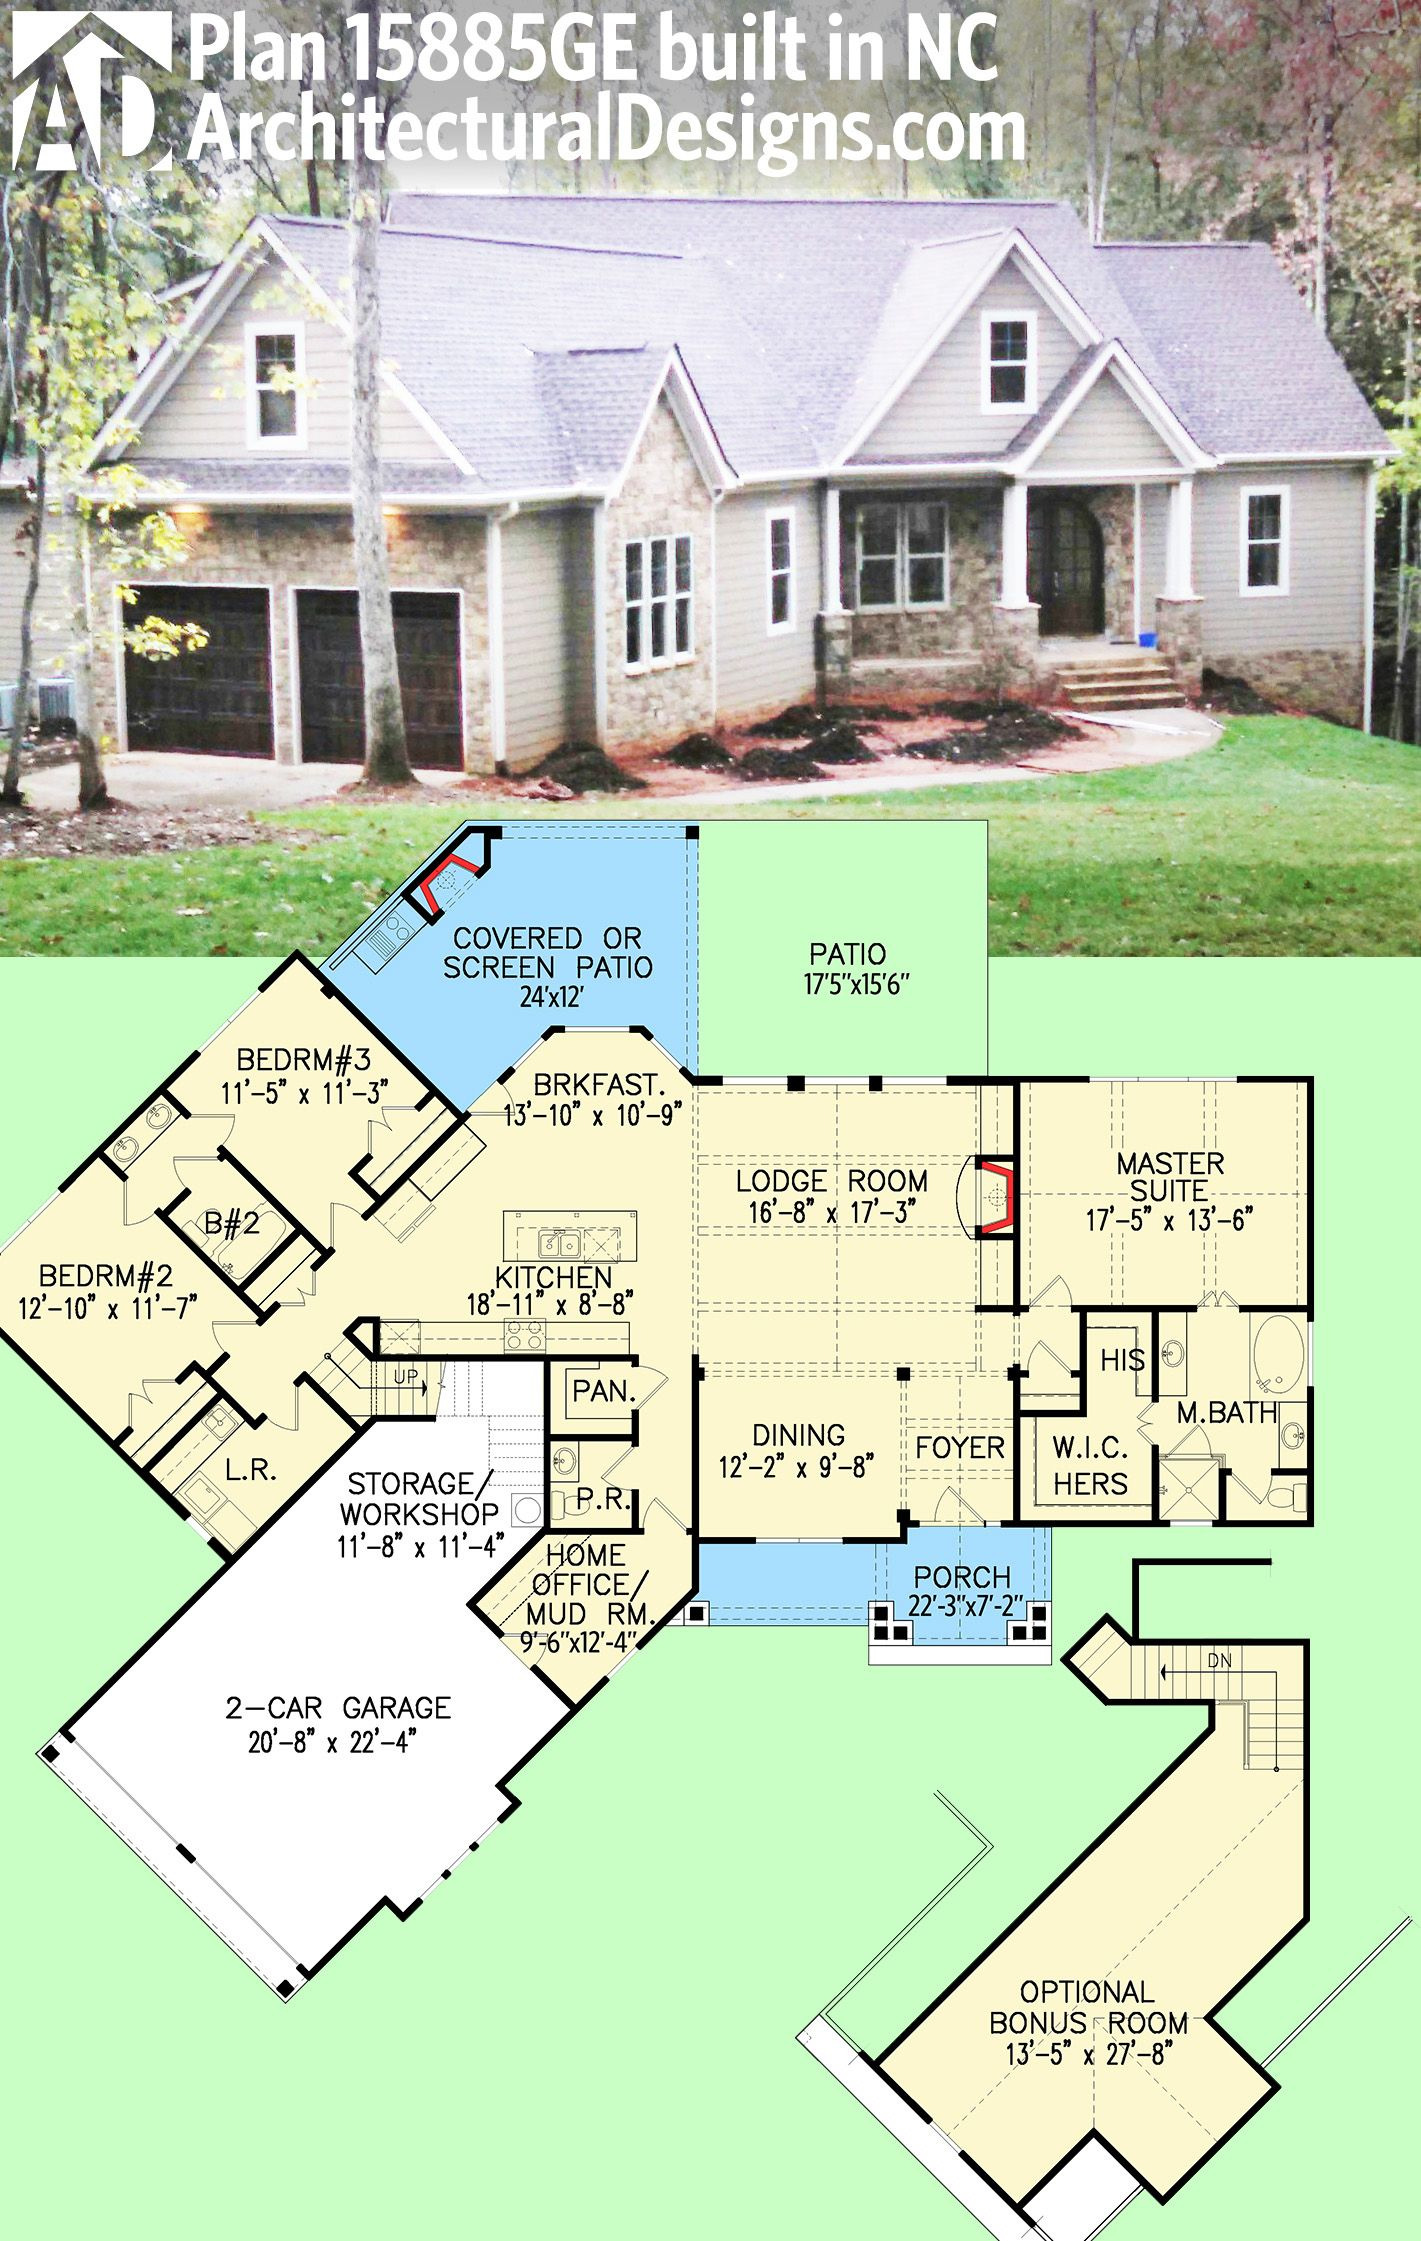 House Plans north Carolina Unique Plan Ge Affordable Gable Roofed Ranch Home Plan